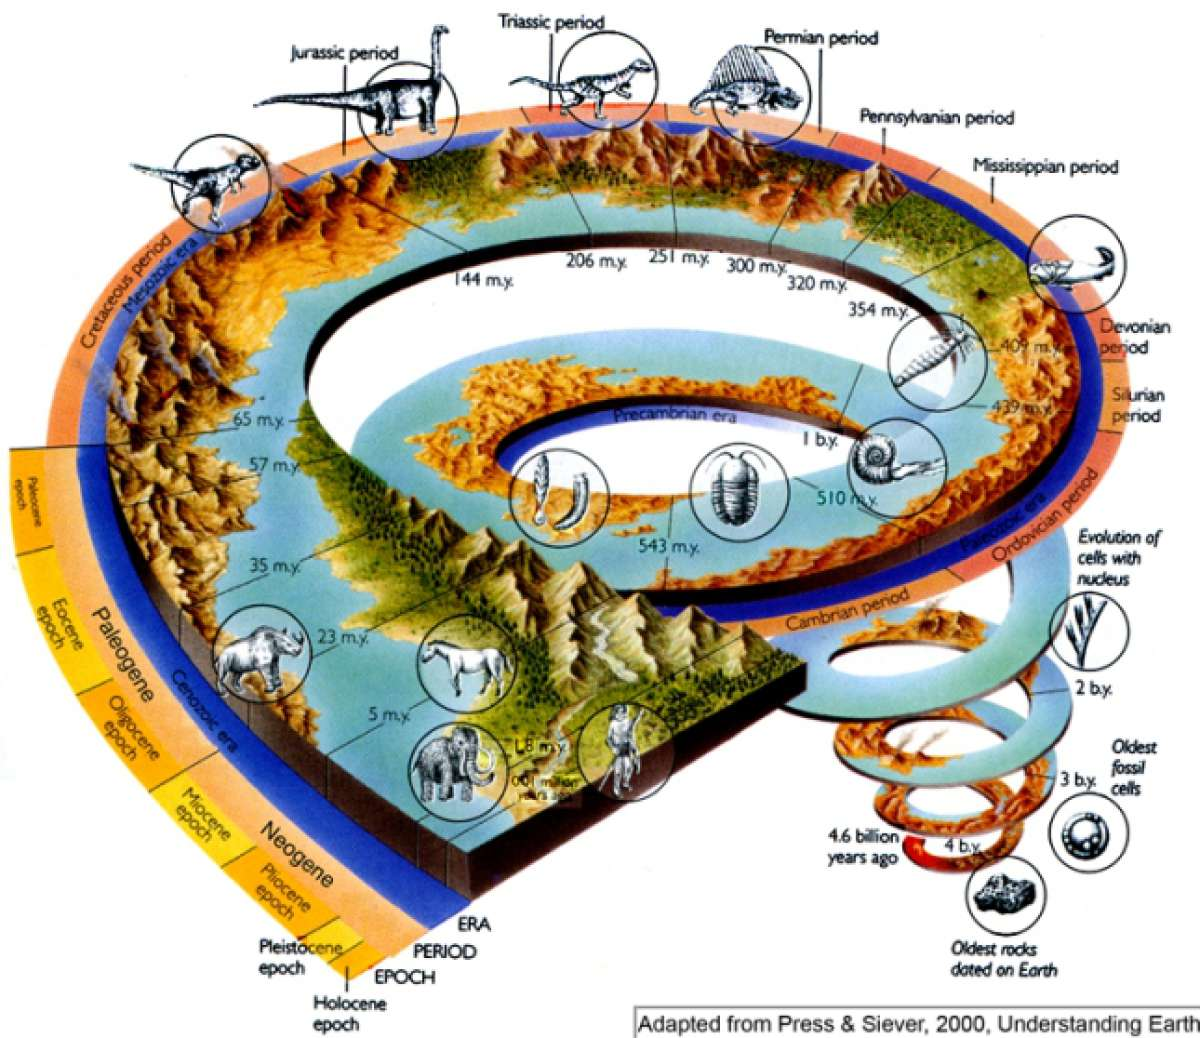 history of life on earth Describe the major events in earths history from its origin until 2 billion years ago in particular, note when earth first formed, when life first evolved, and define geological record the division of earths history into time periods grouped into 3 eons archean, proterozoic, and phaneroic, and further.